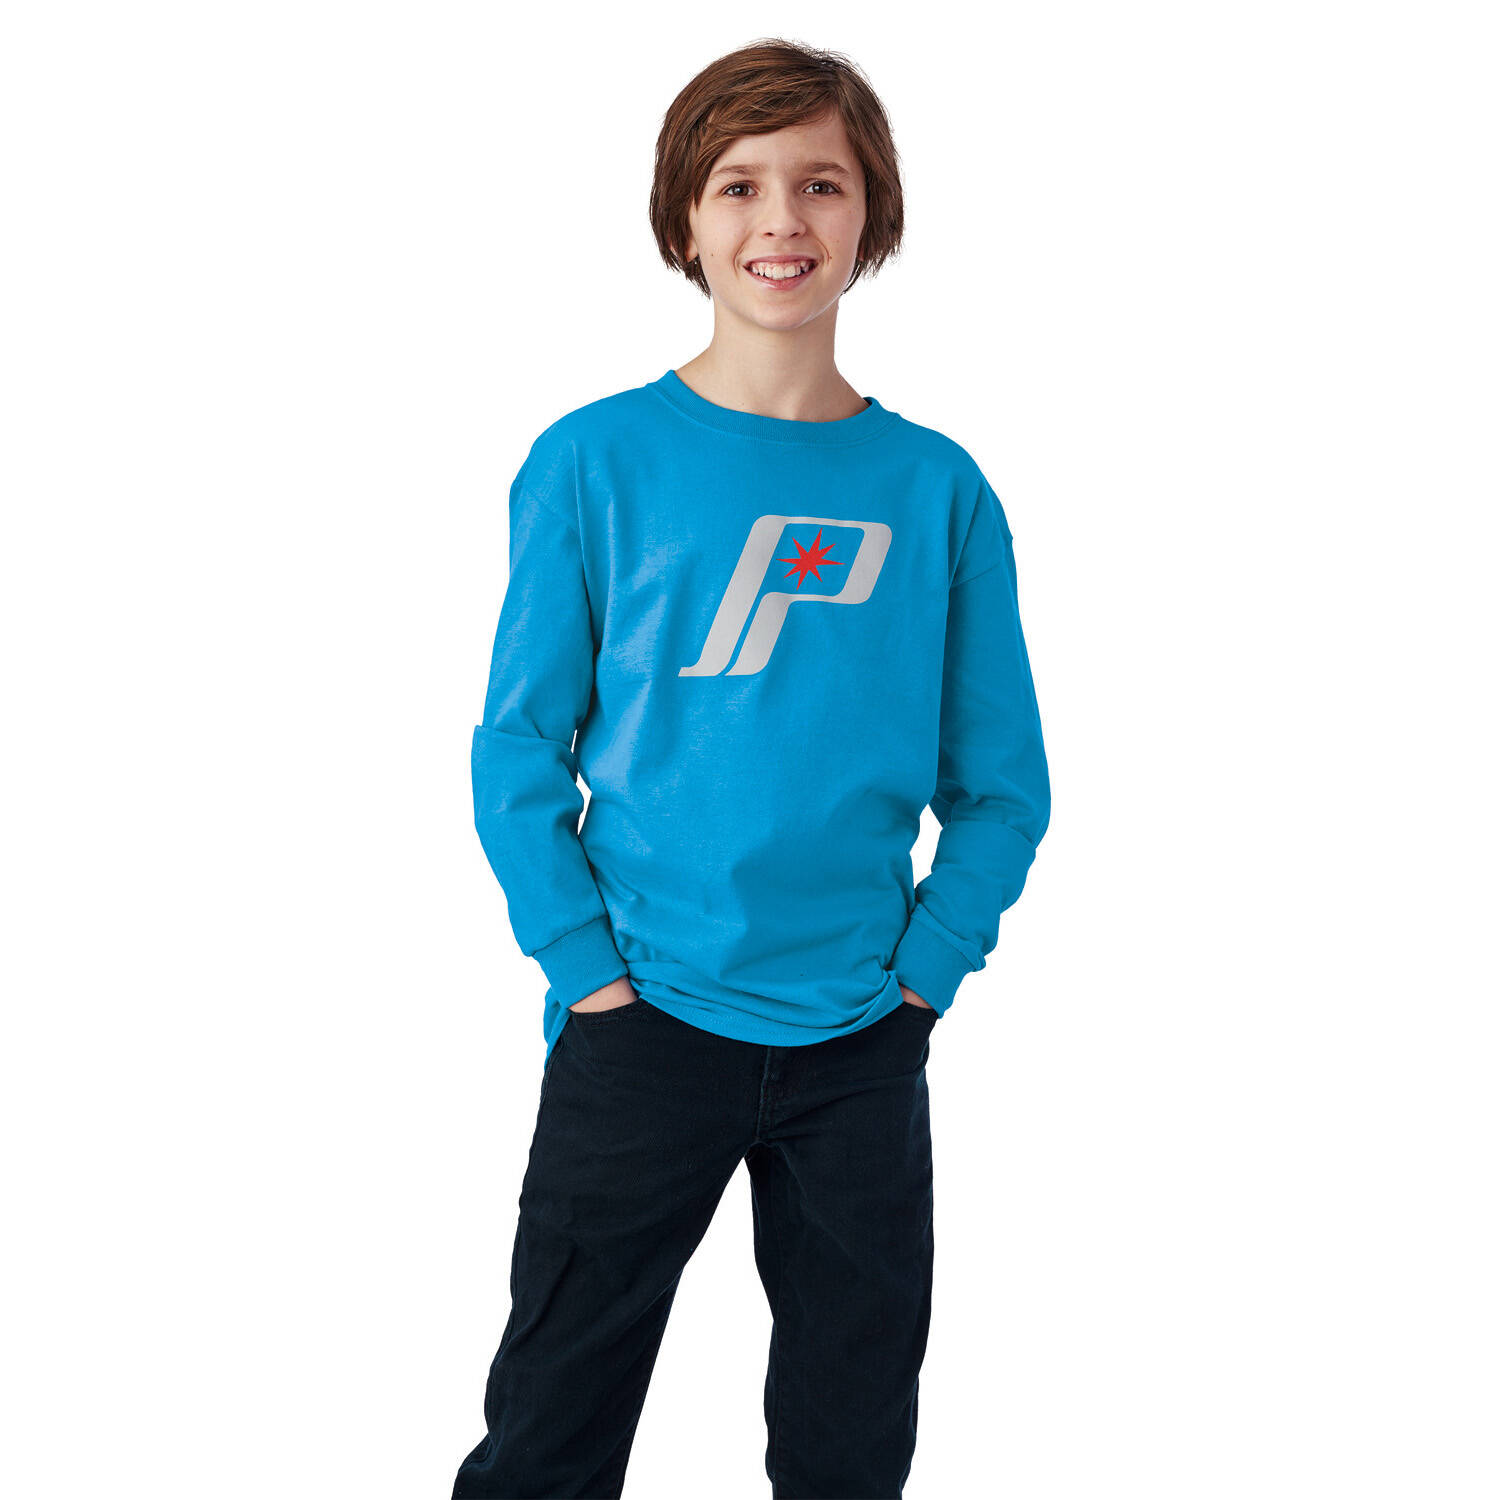 Youth Long-Sleeve Retro Graphic Shirt with Polaris® Logo, Blue